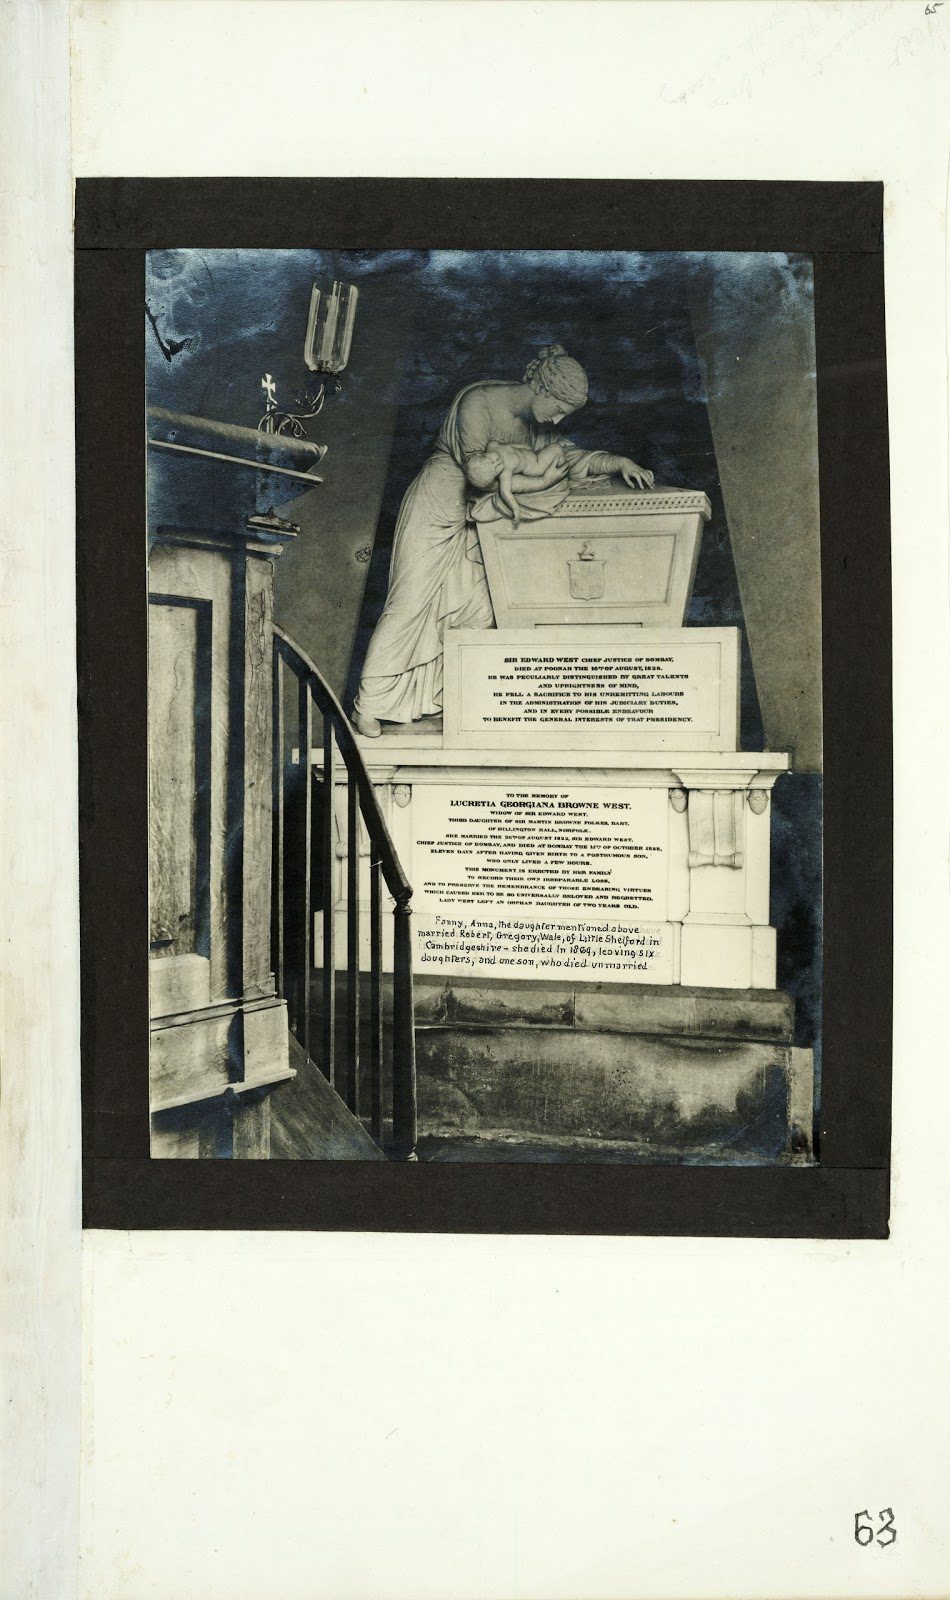 A Record of Shelford Parva by Fanny Wale P63 fo. 65, page 63: Photograph of the monument to Lucretia Georgiana Browne West, and her husband Sir Edward West, both died in 1828. [not in photographic copy]